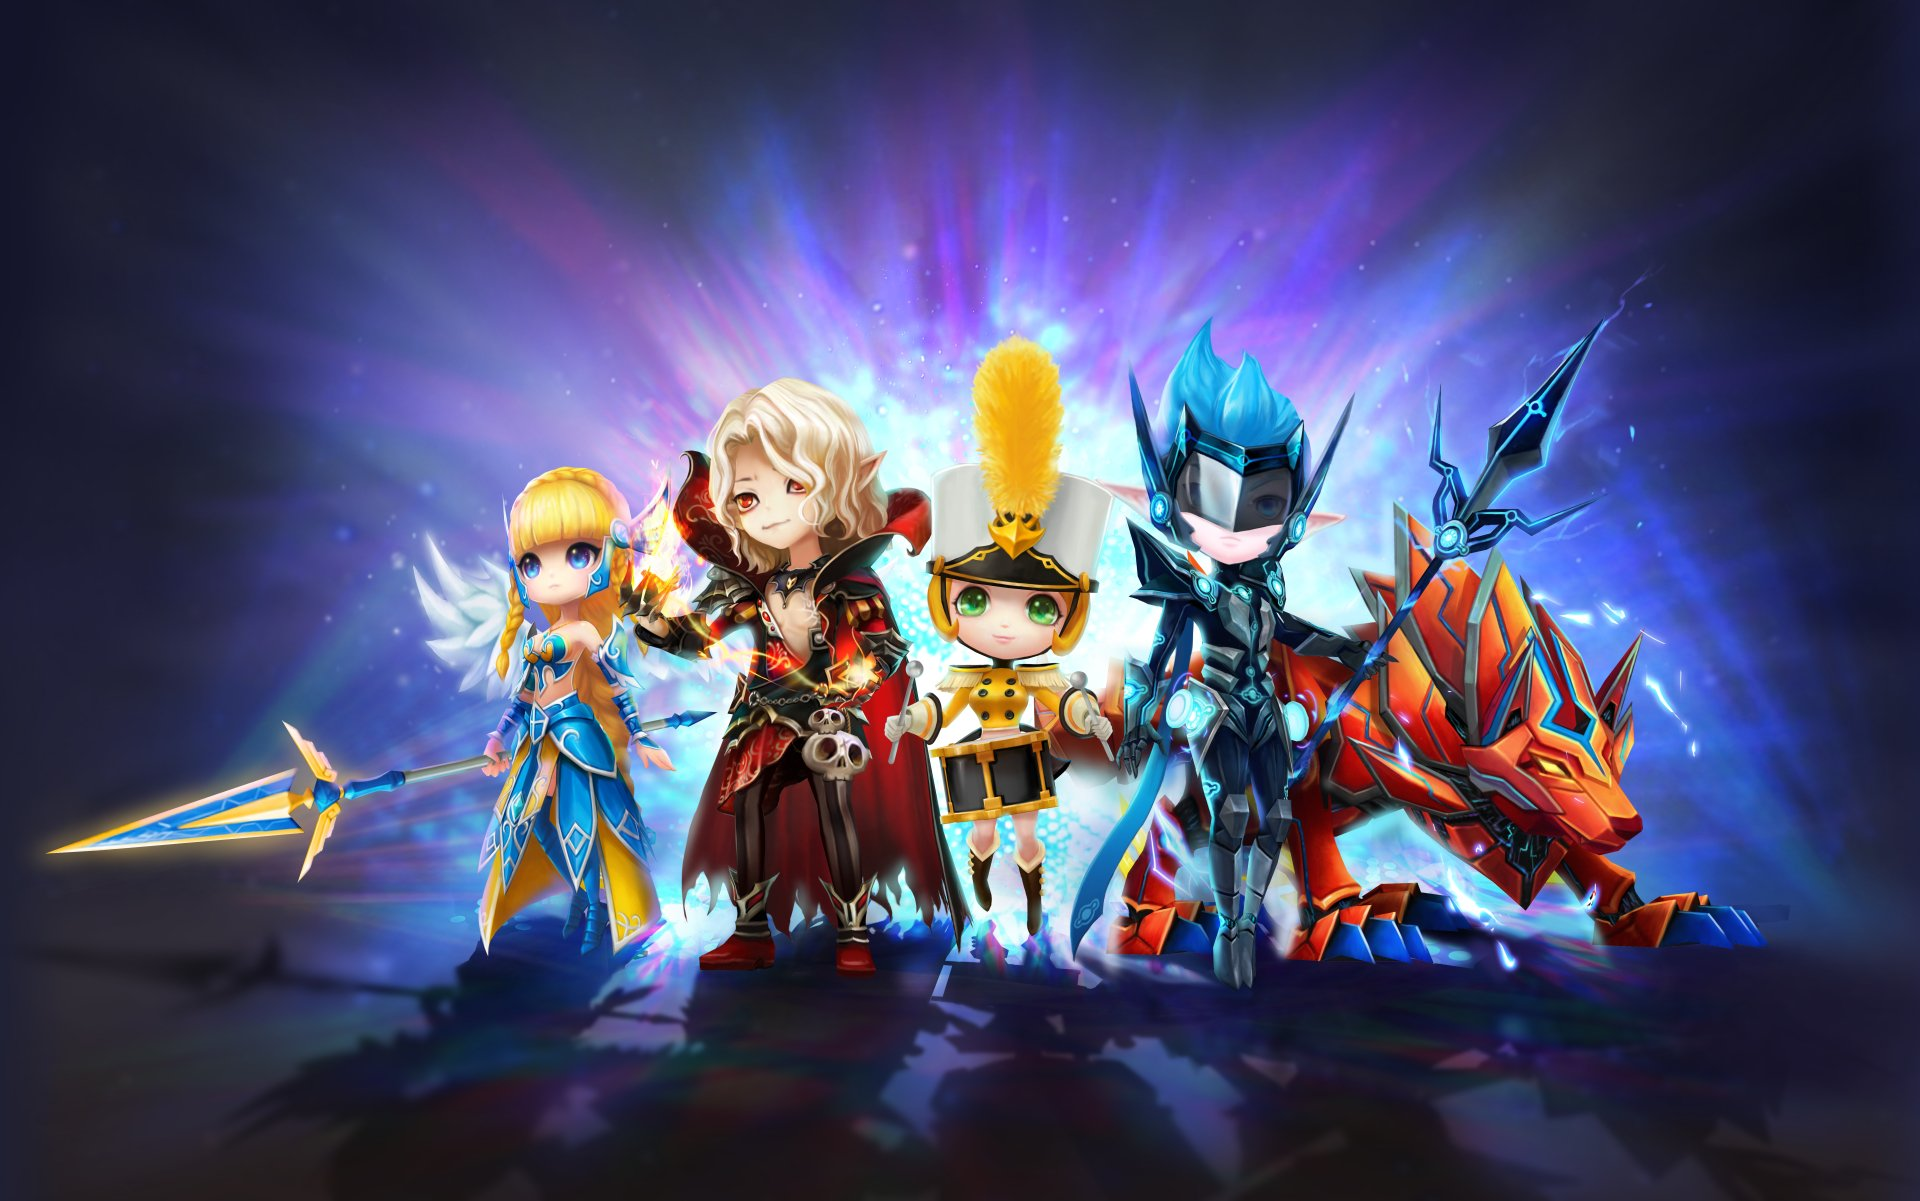 Video Game - Summoners War: Sky Arena  Summoners War Wallpaper